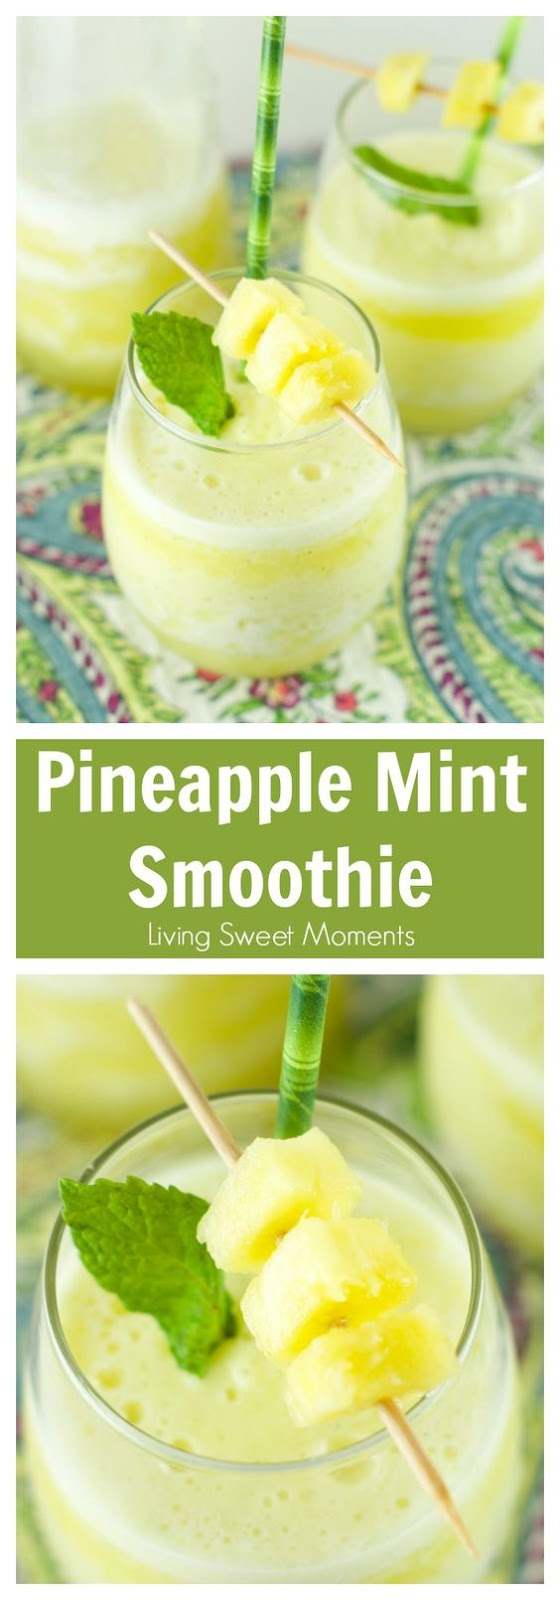 Pineapple Mint Smoothie